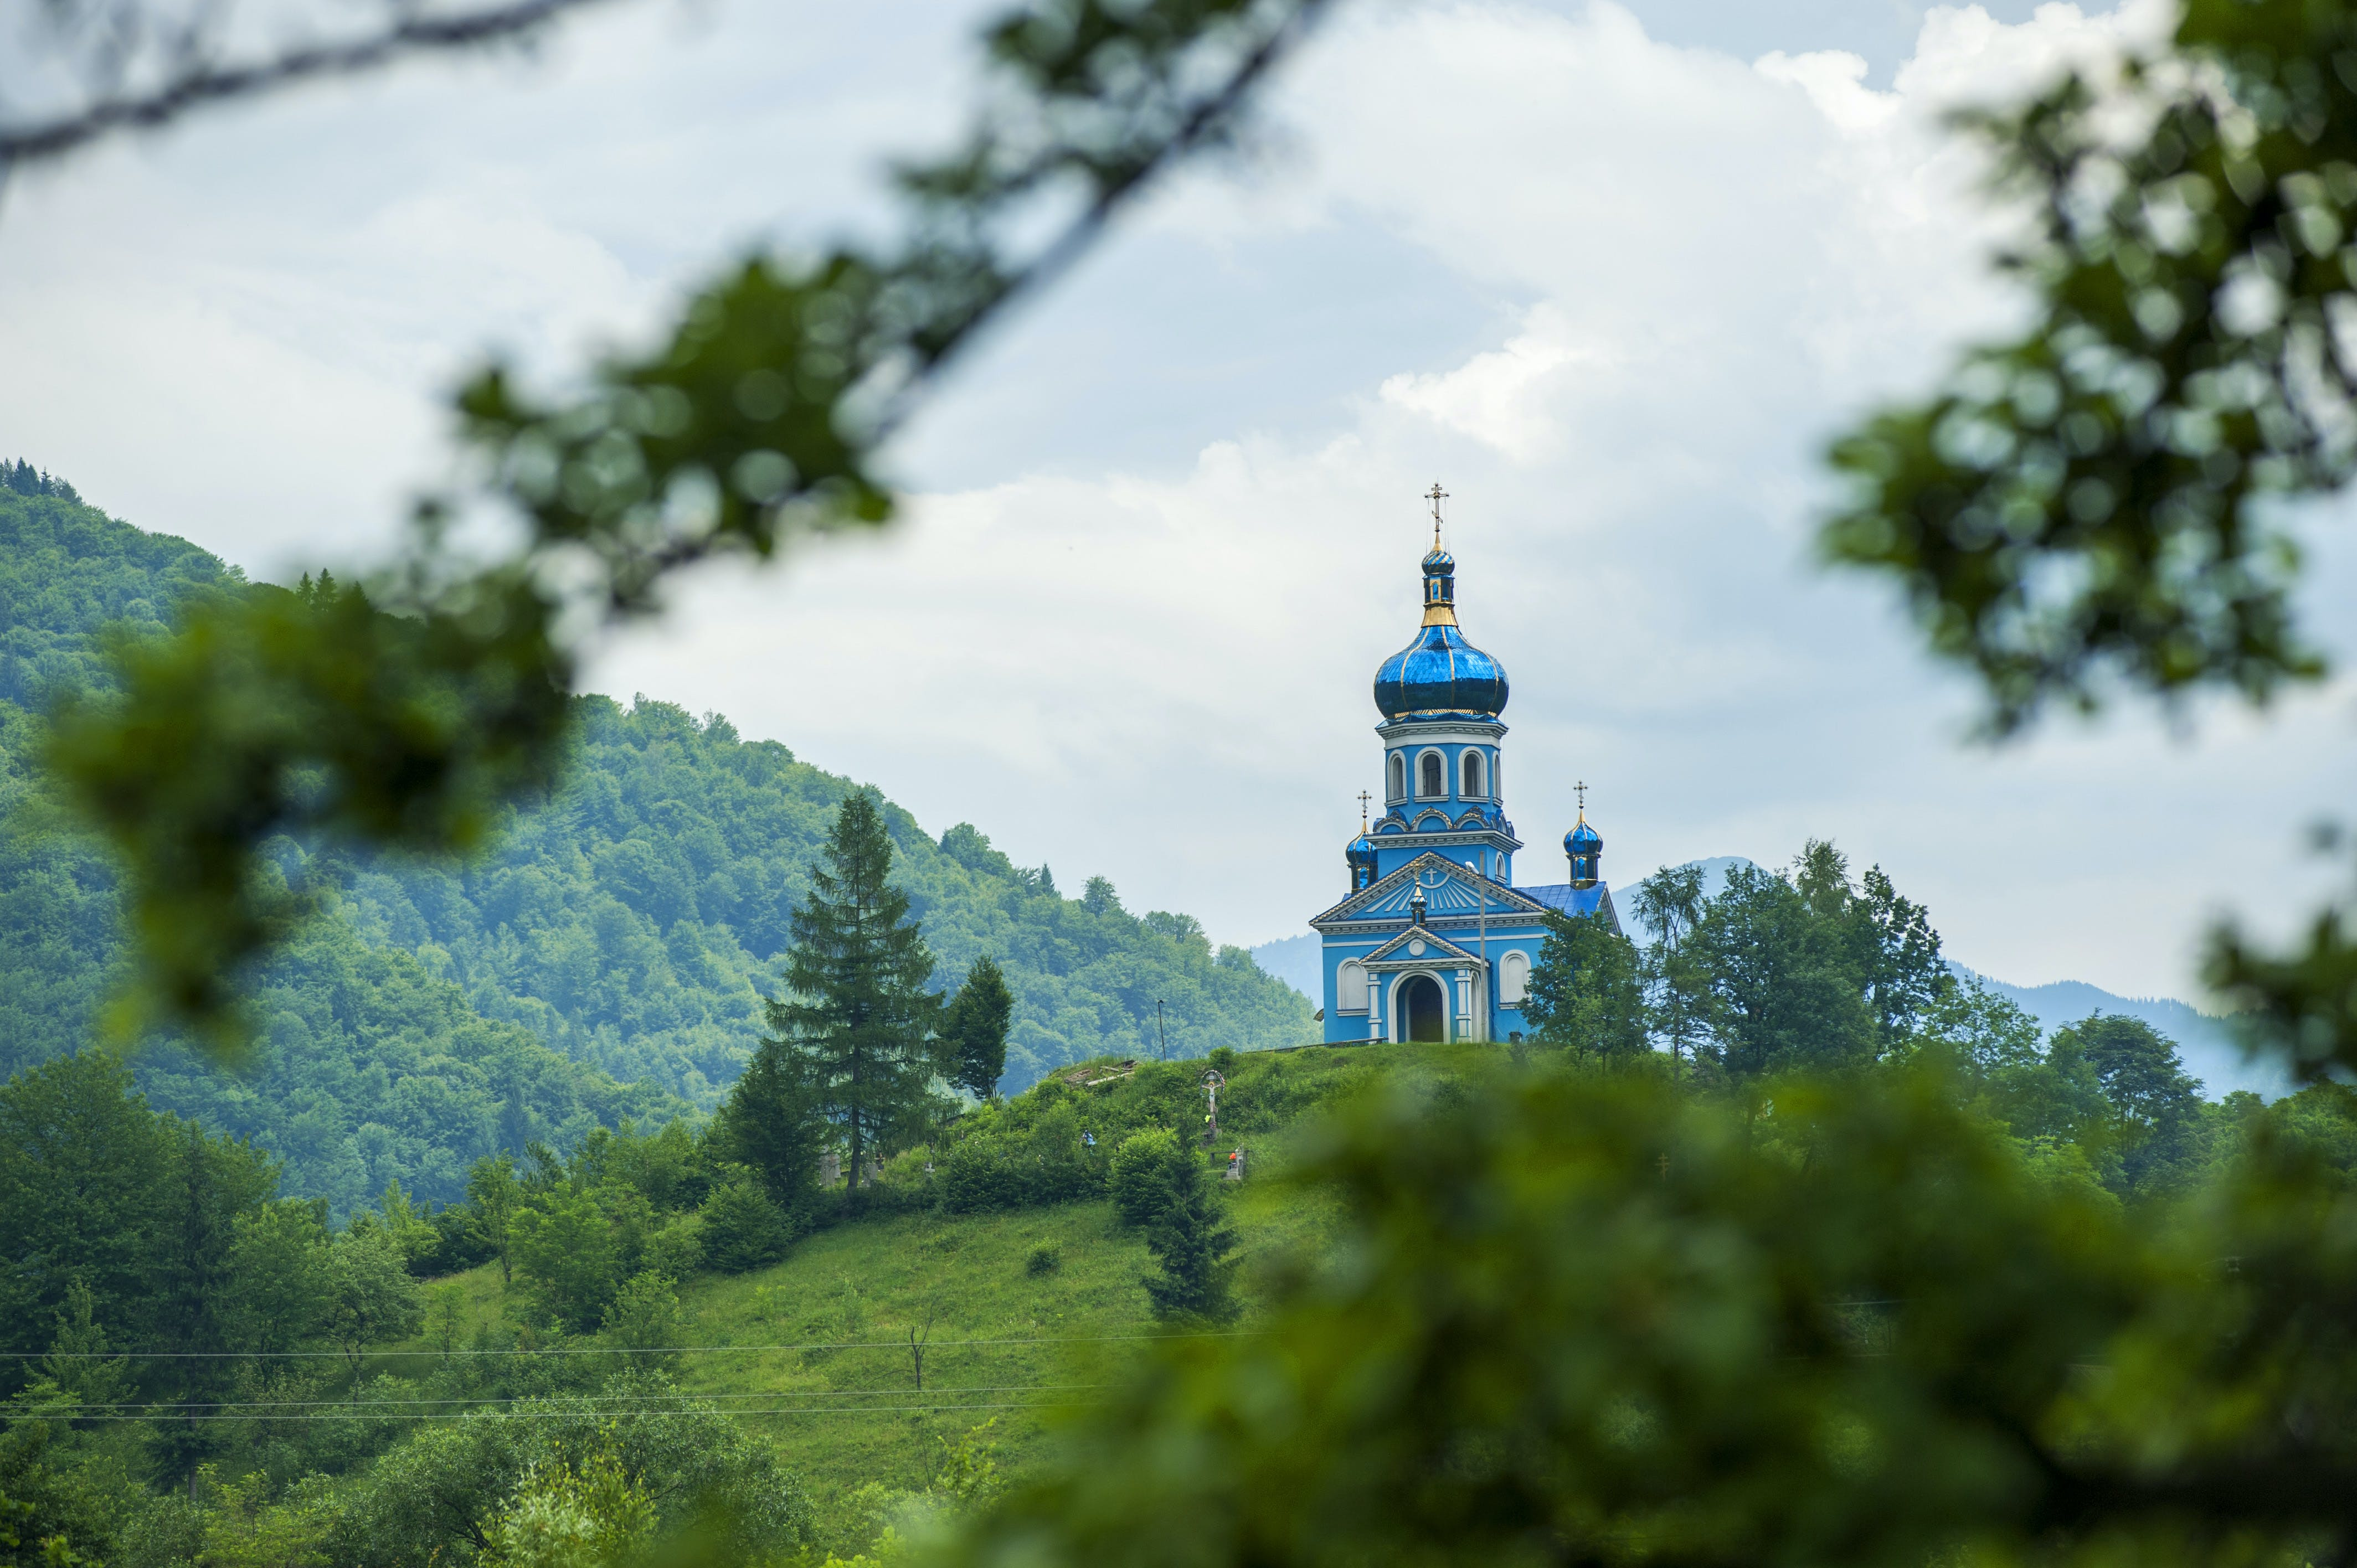 Blue Dome Building Surrounded by Tall Trees Taken Under White Clouds